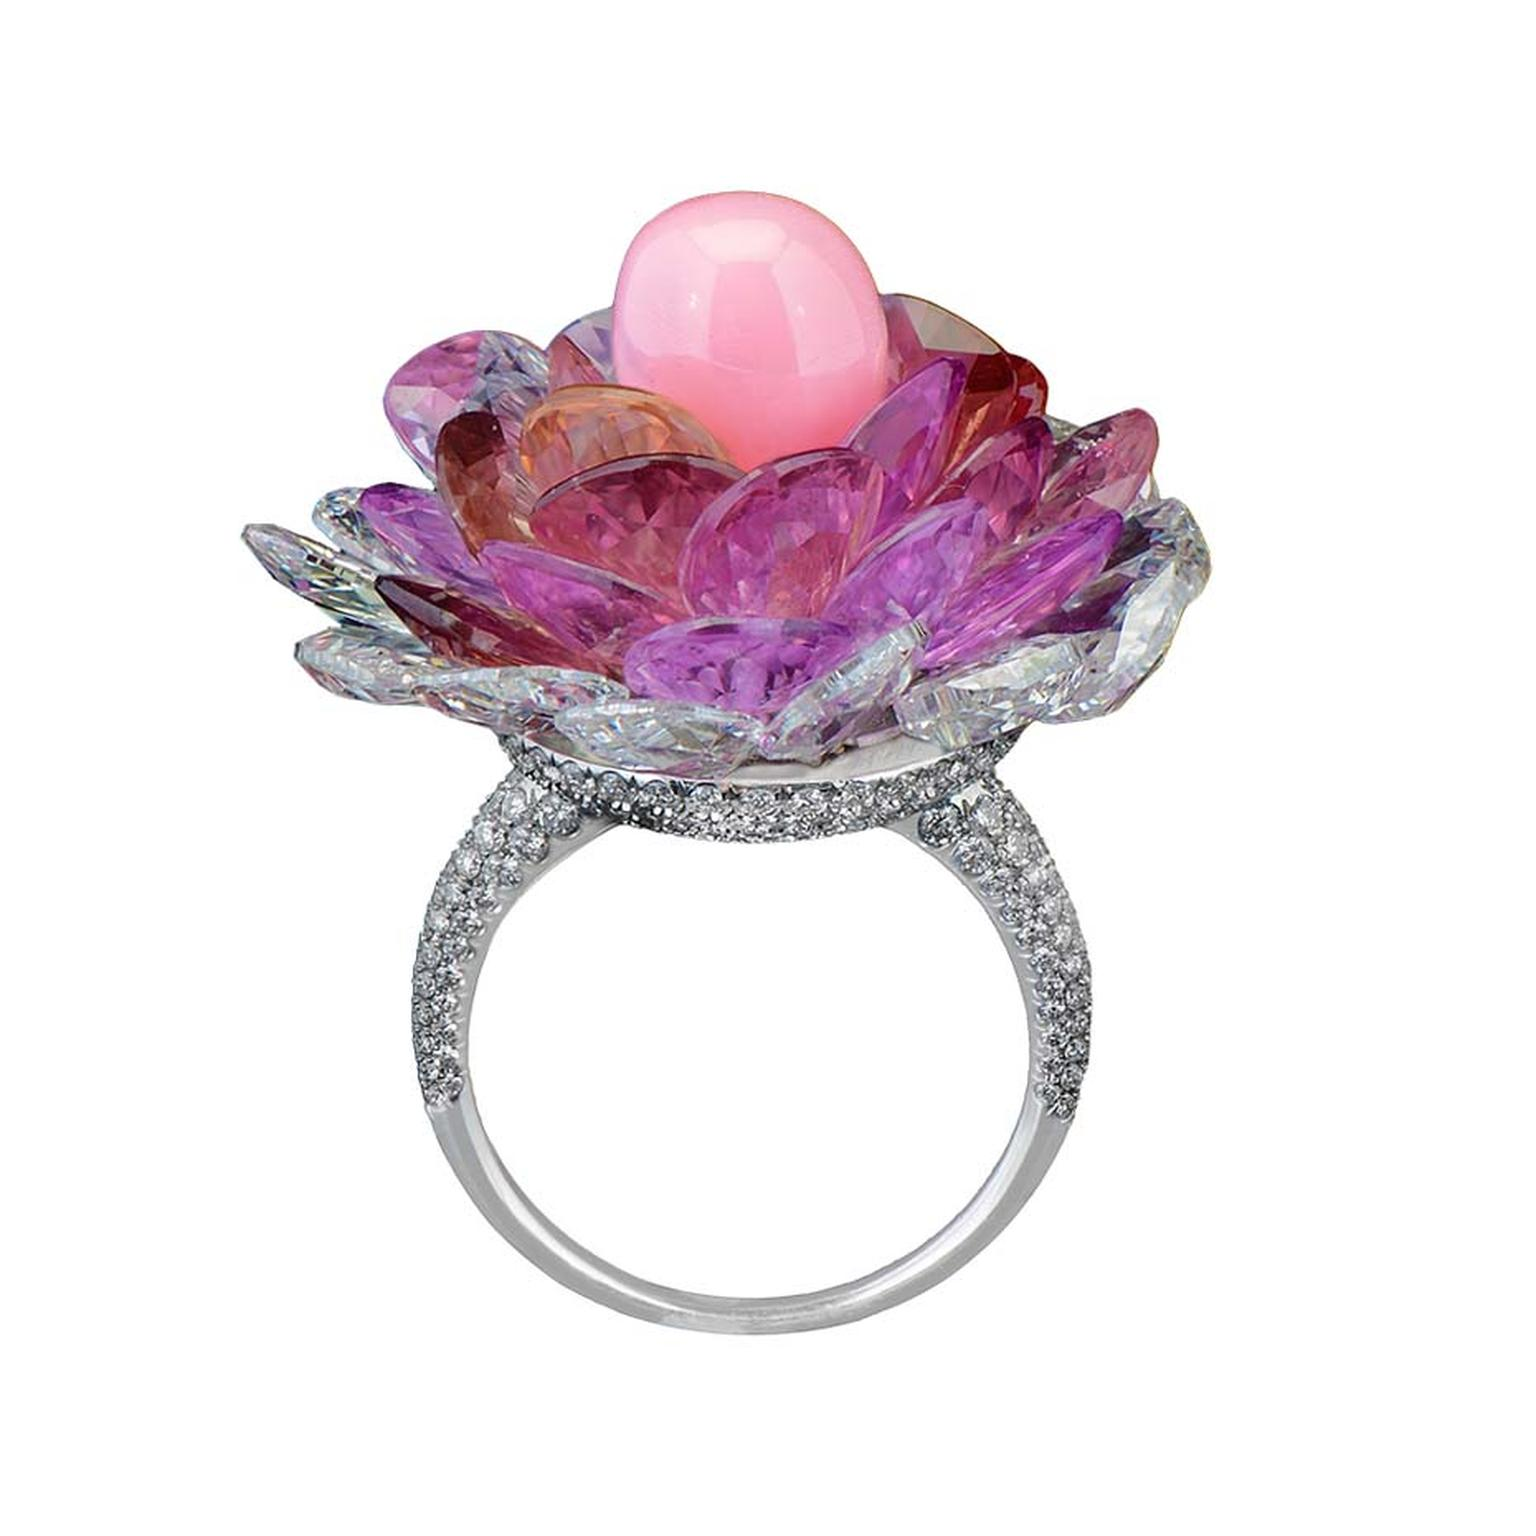 The setting of Morelle Davidson's new ring allows the petals to move with the motion of the wearer, just as a real flower would.